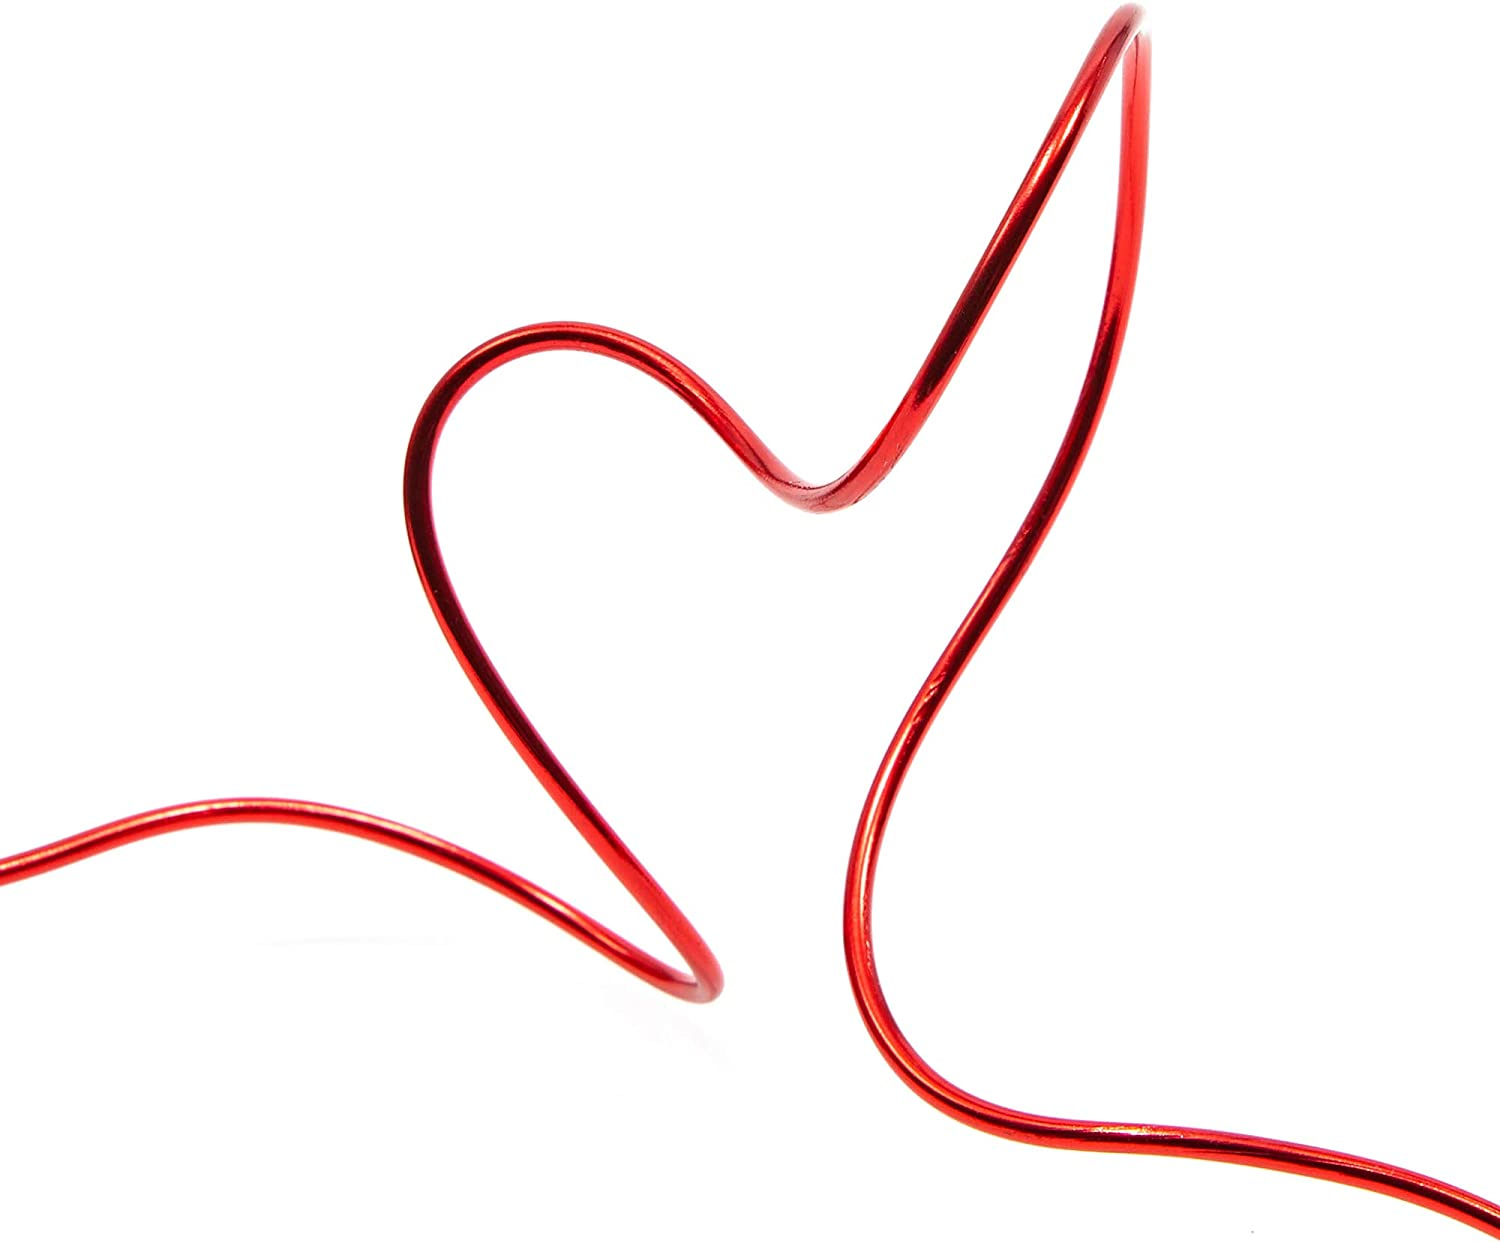 101 Feet Red Bright Creations Aluminum Wire for DIY Crafts 12 Gauge